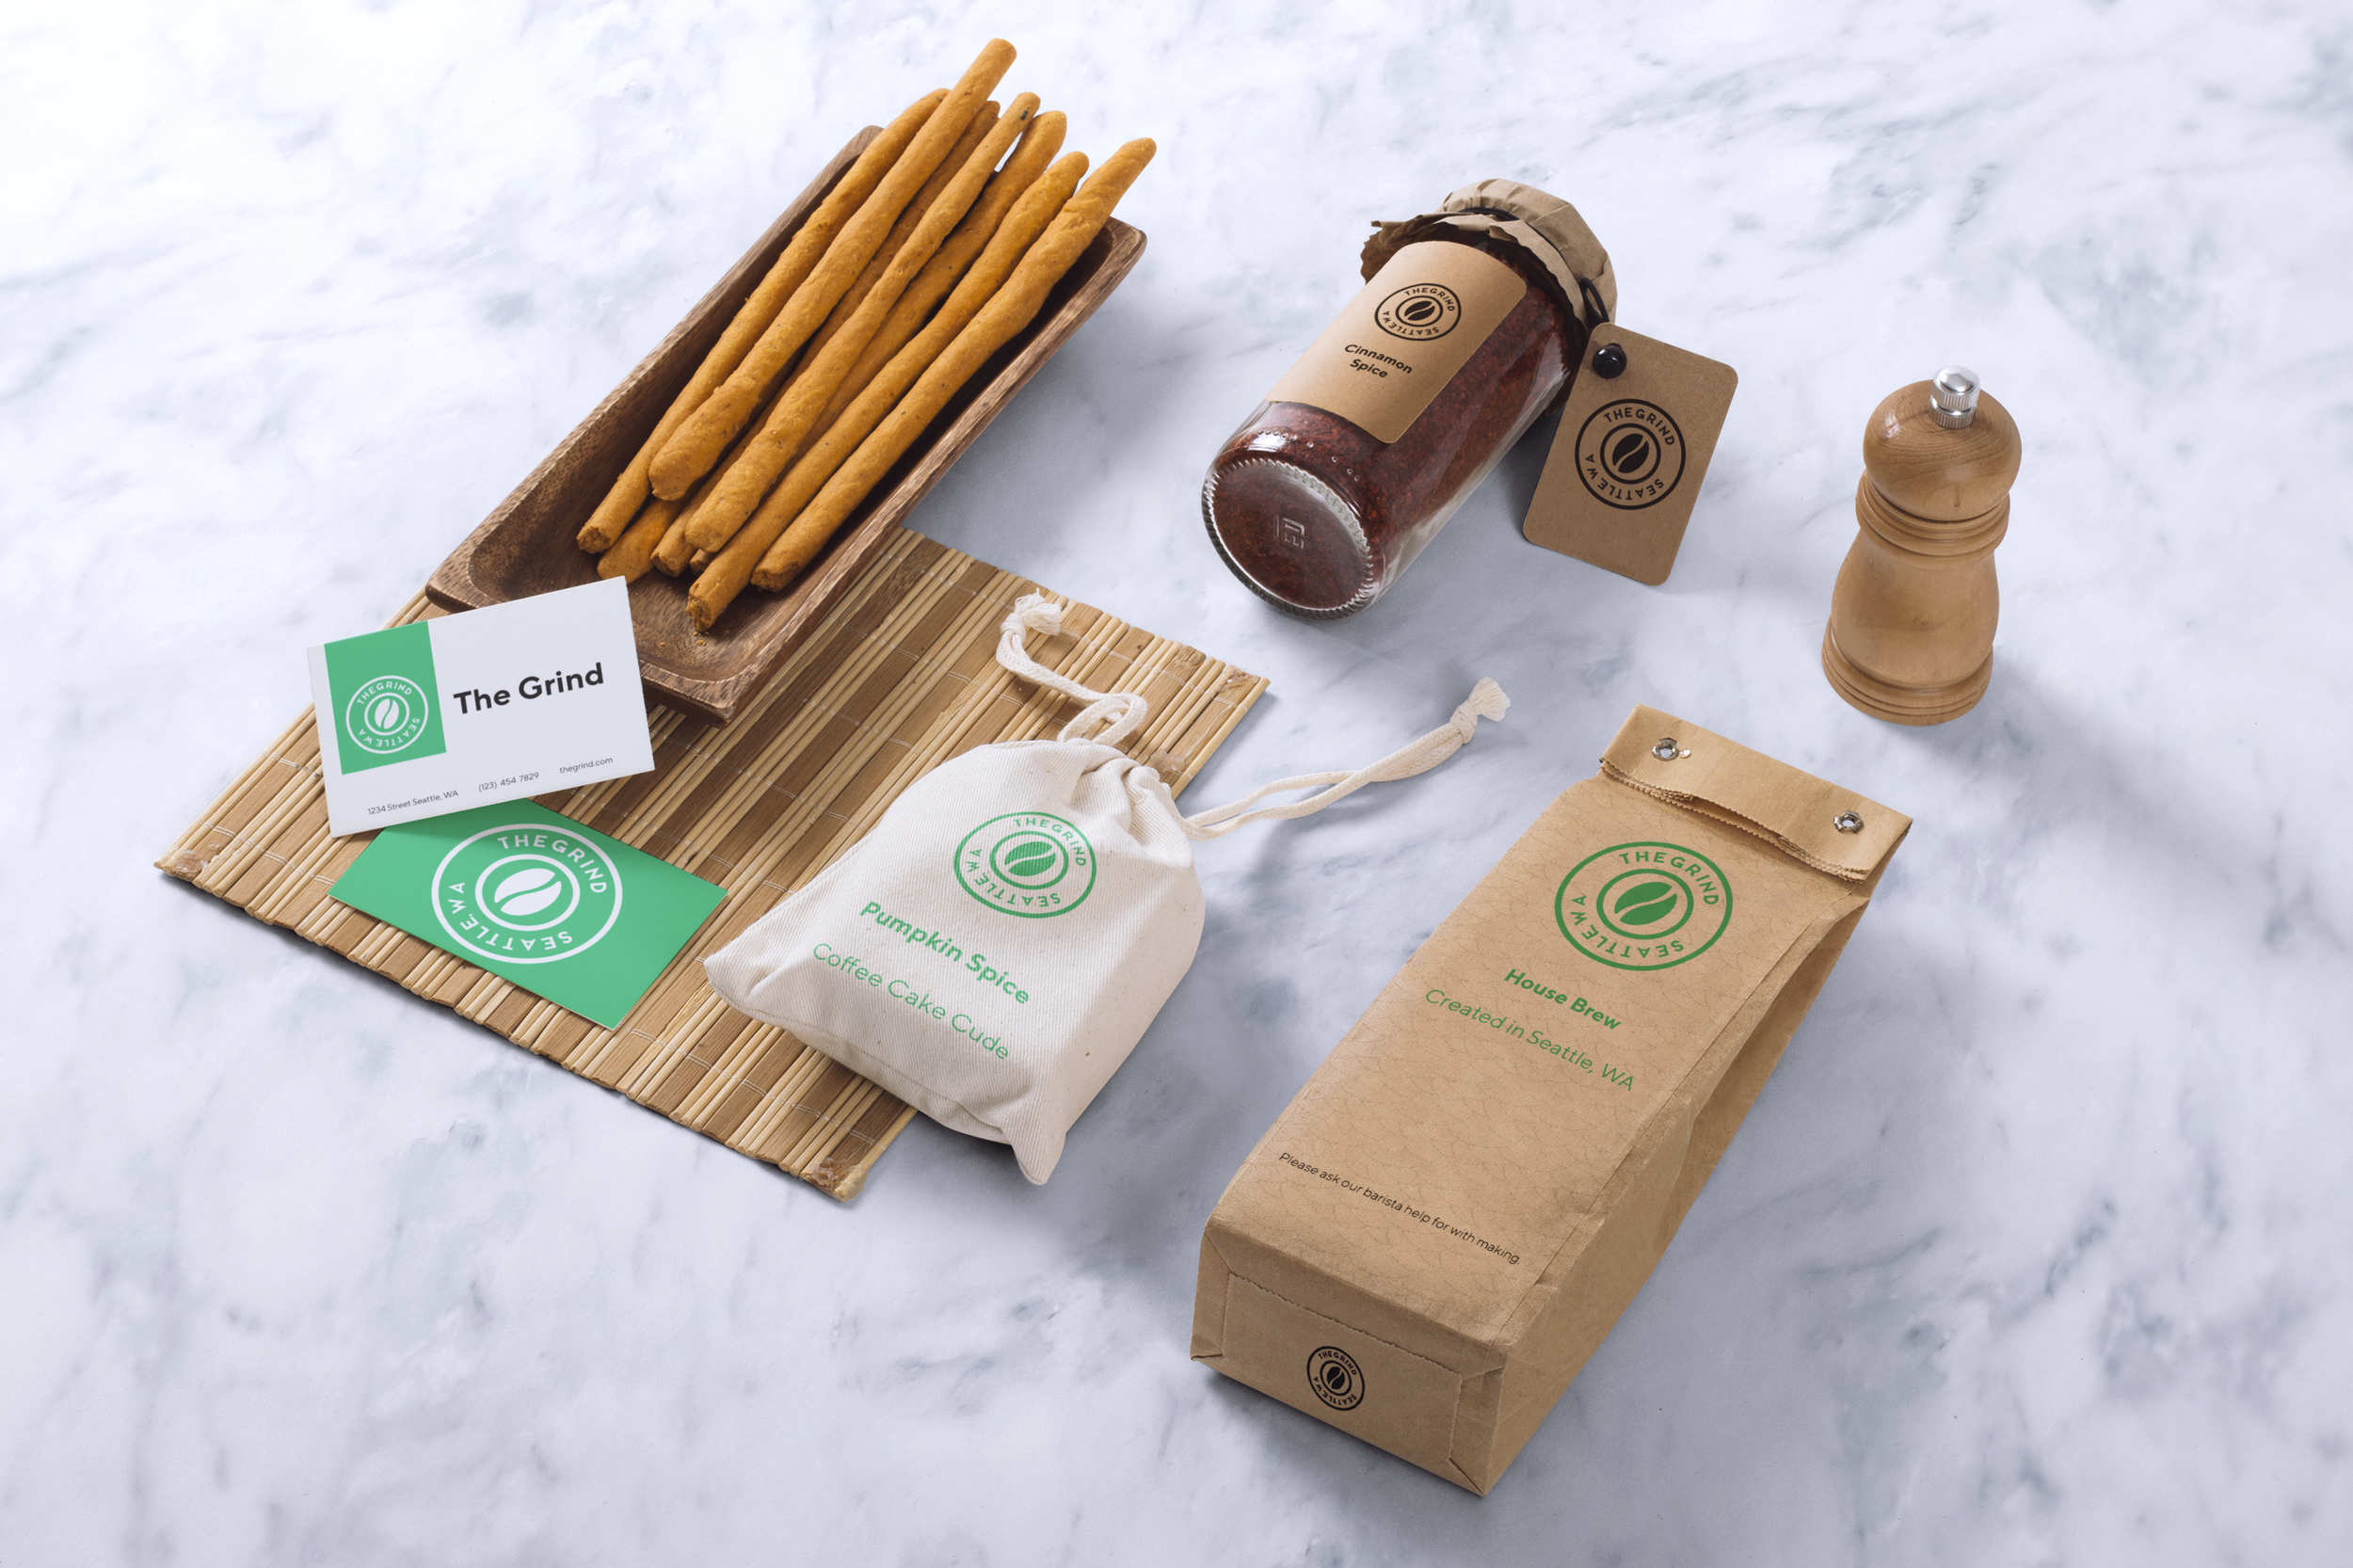 Food Packaging & Branding MockUps 02.png